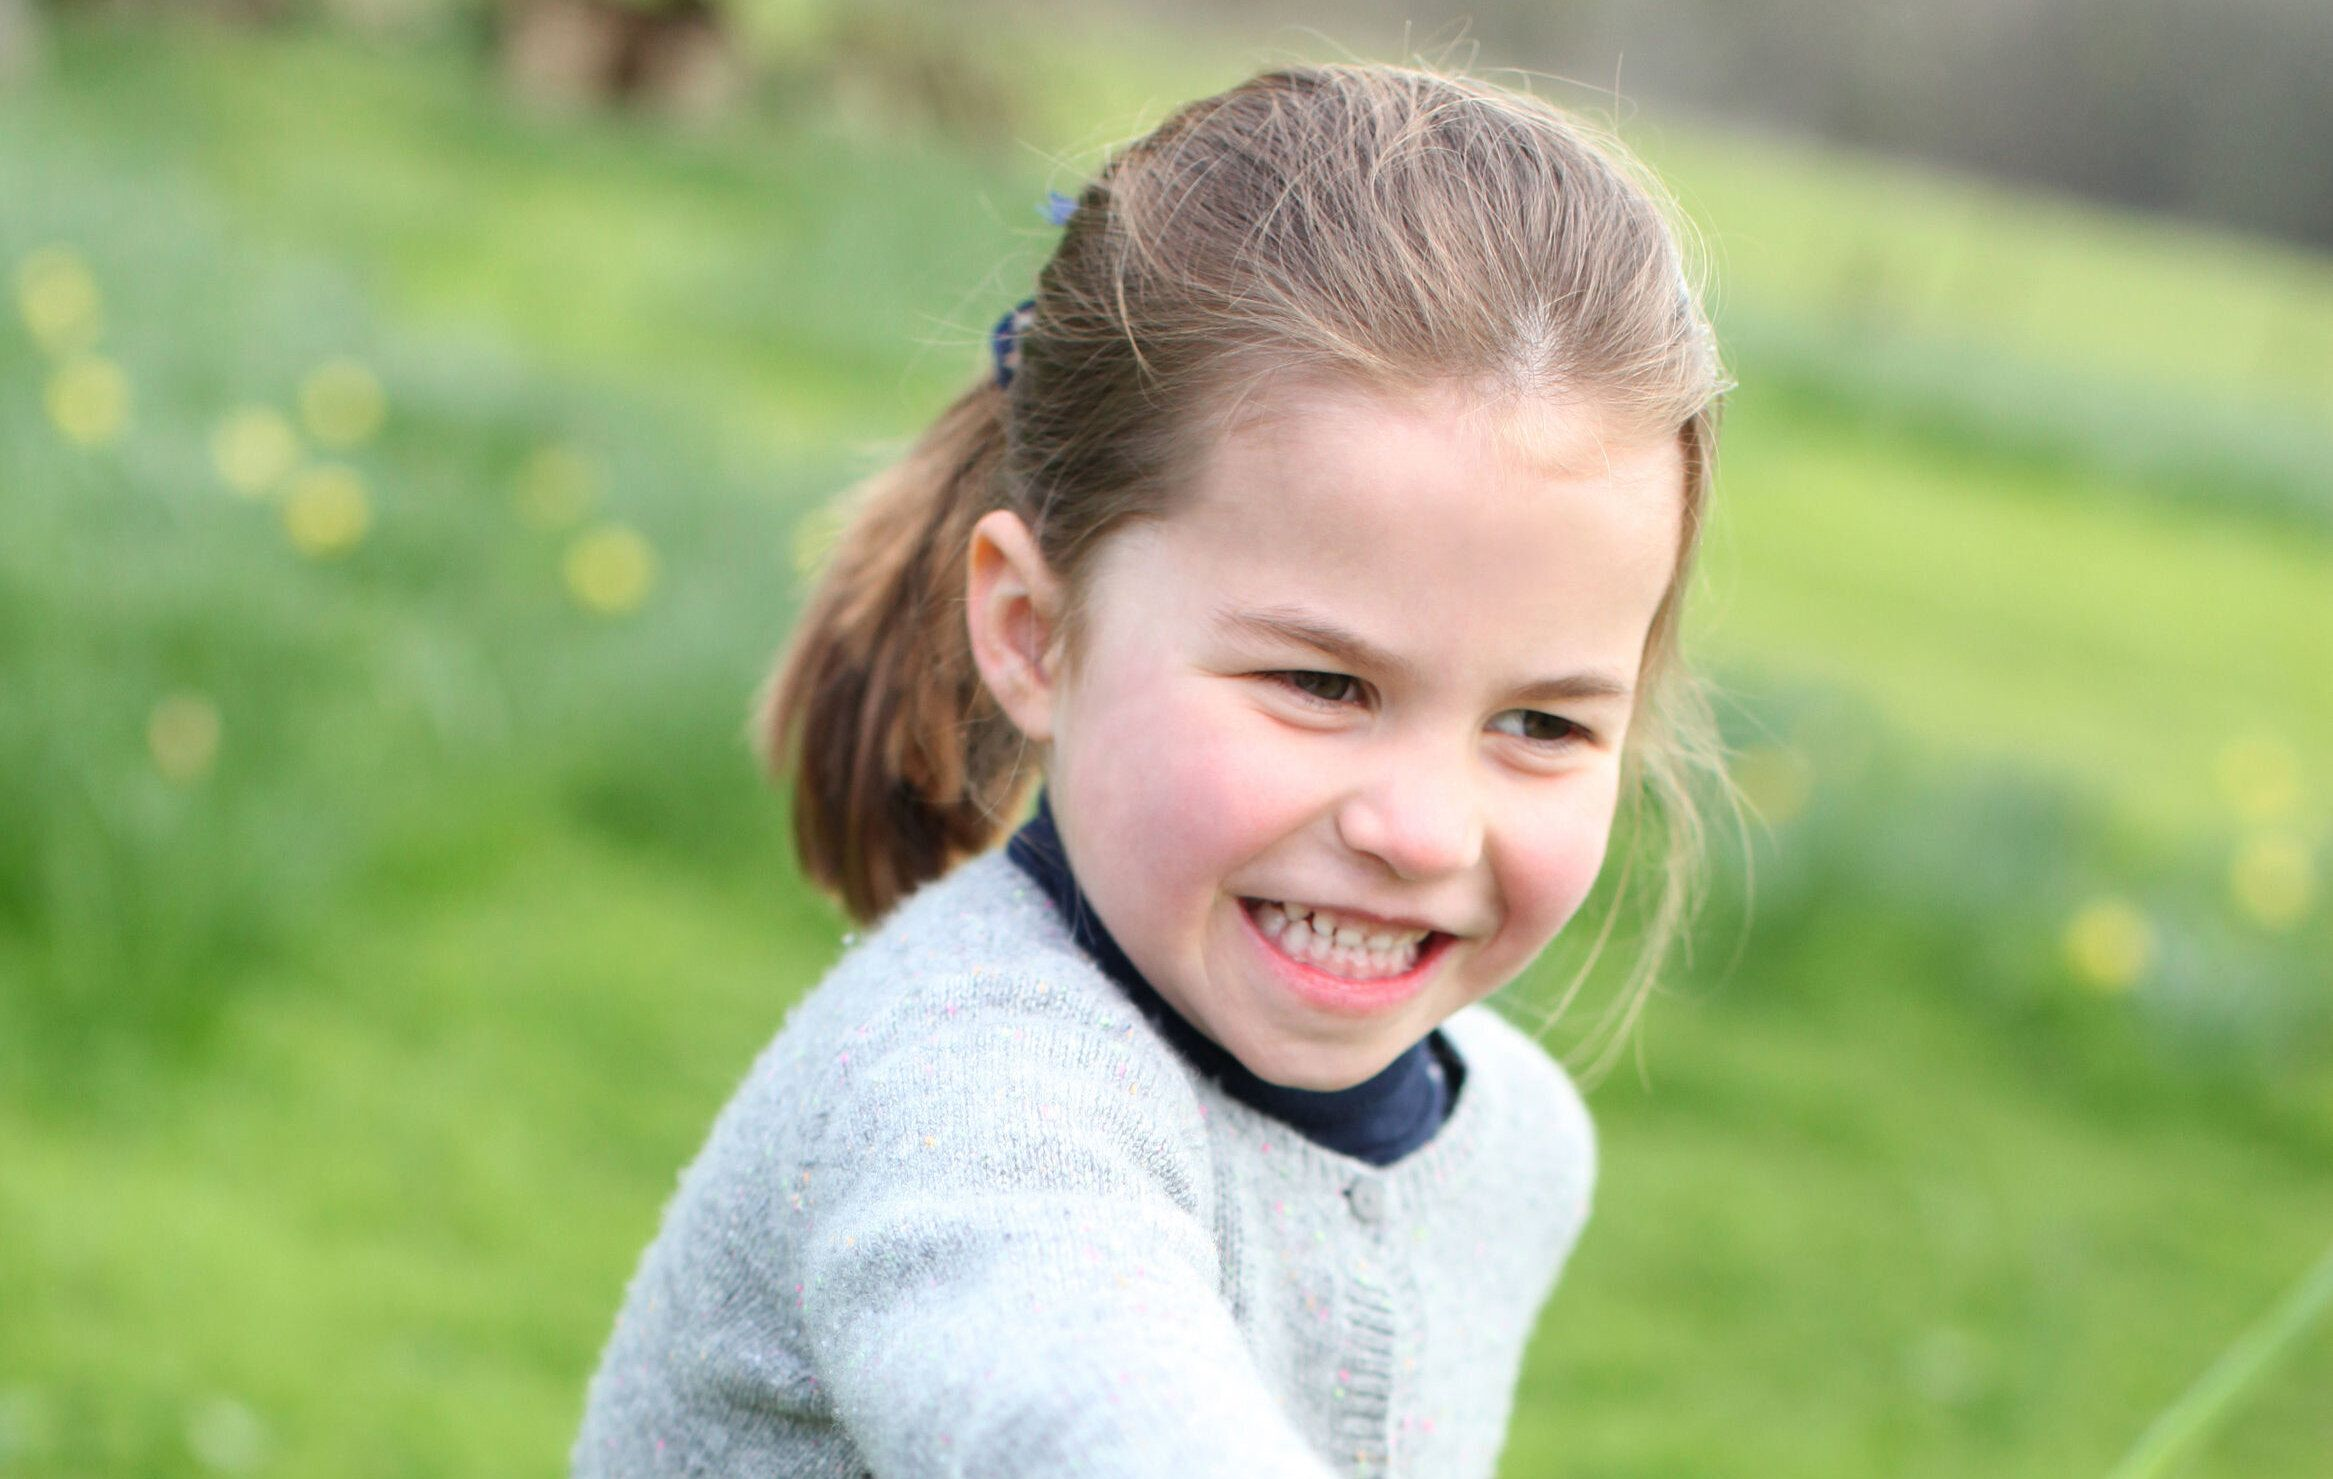 Three new photos of Charlotte have been released to mark her fourth birthday [Photo: The Duchess of Cambridge]